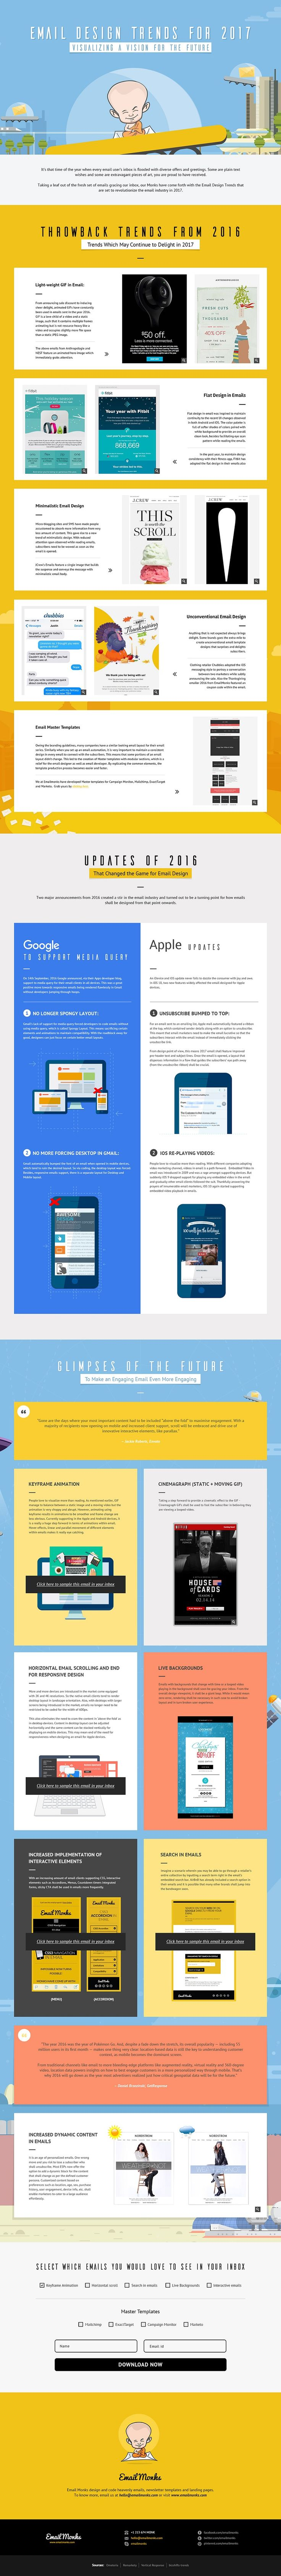 Email Marketing in 2017: 7 Email Design Trends to Shape Your Strategy [Infographic]